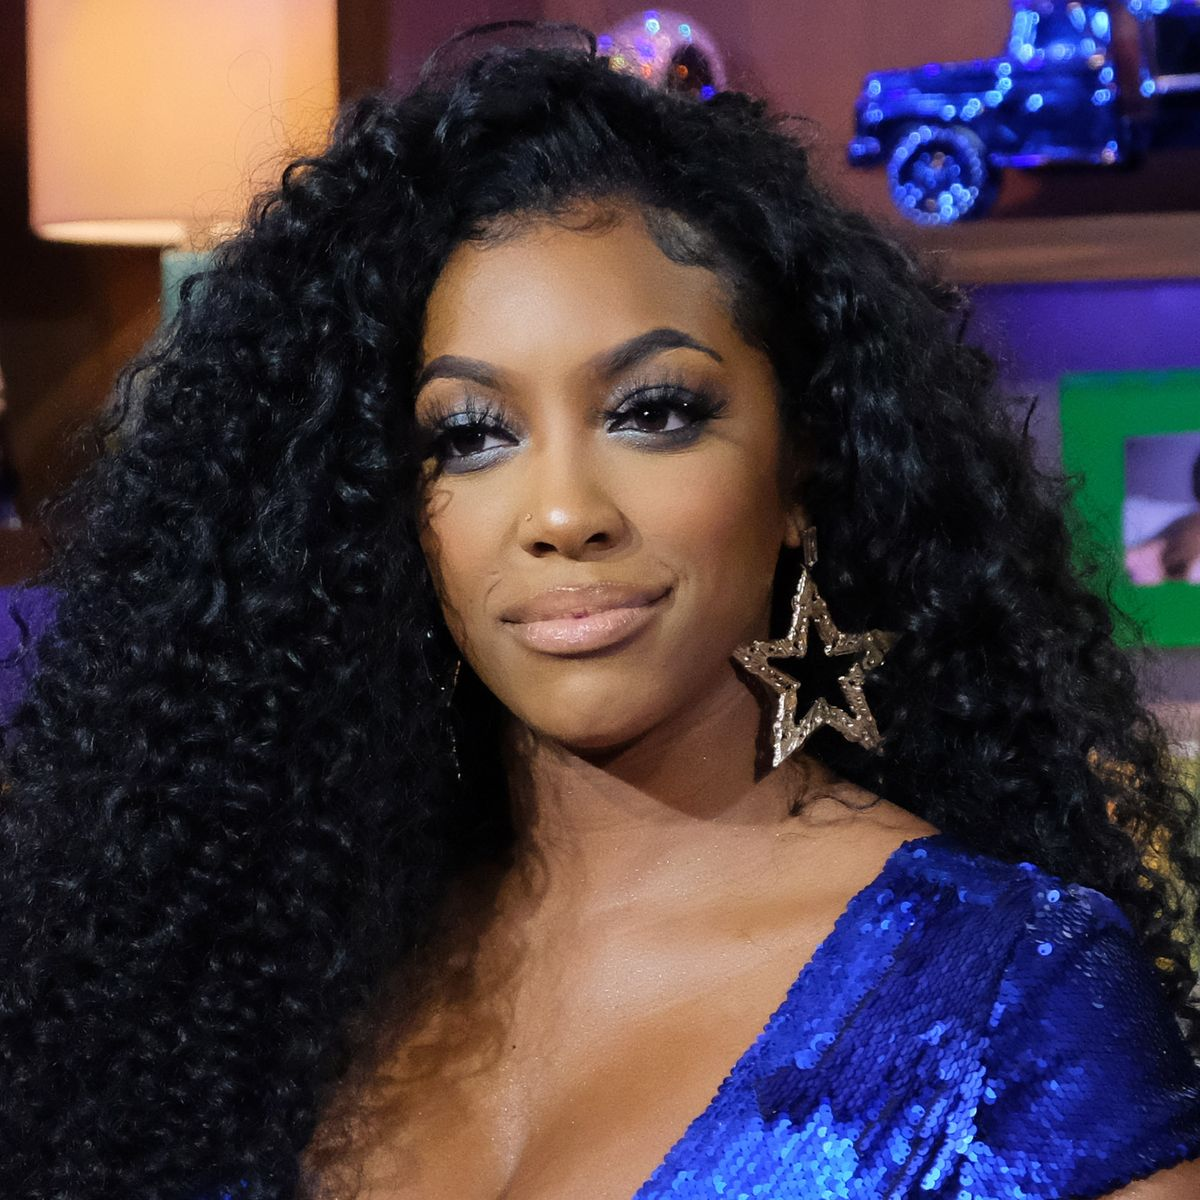 Porsha Williams Advises Fans To Be The Change They Want To See